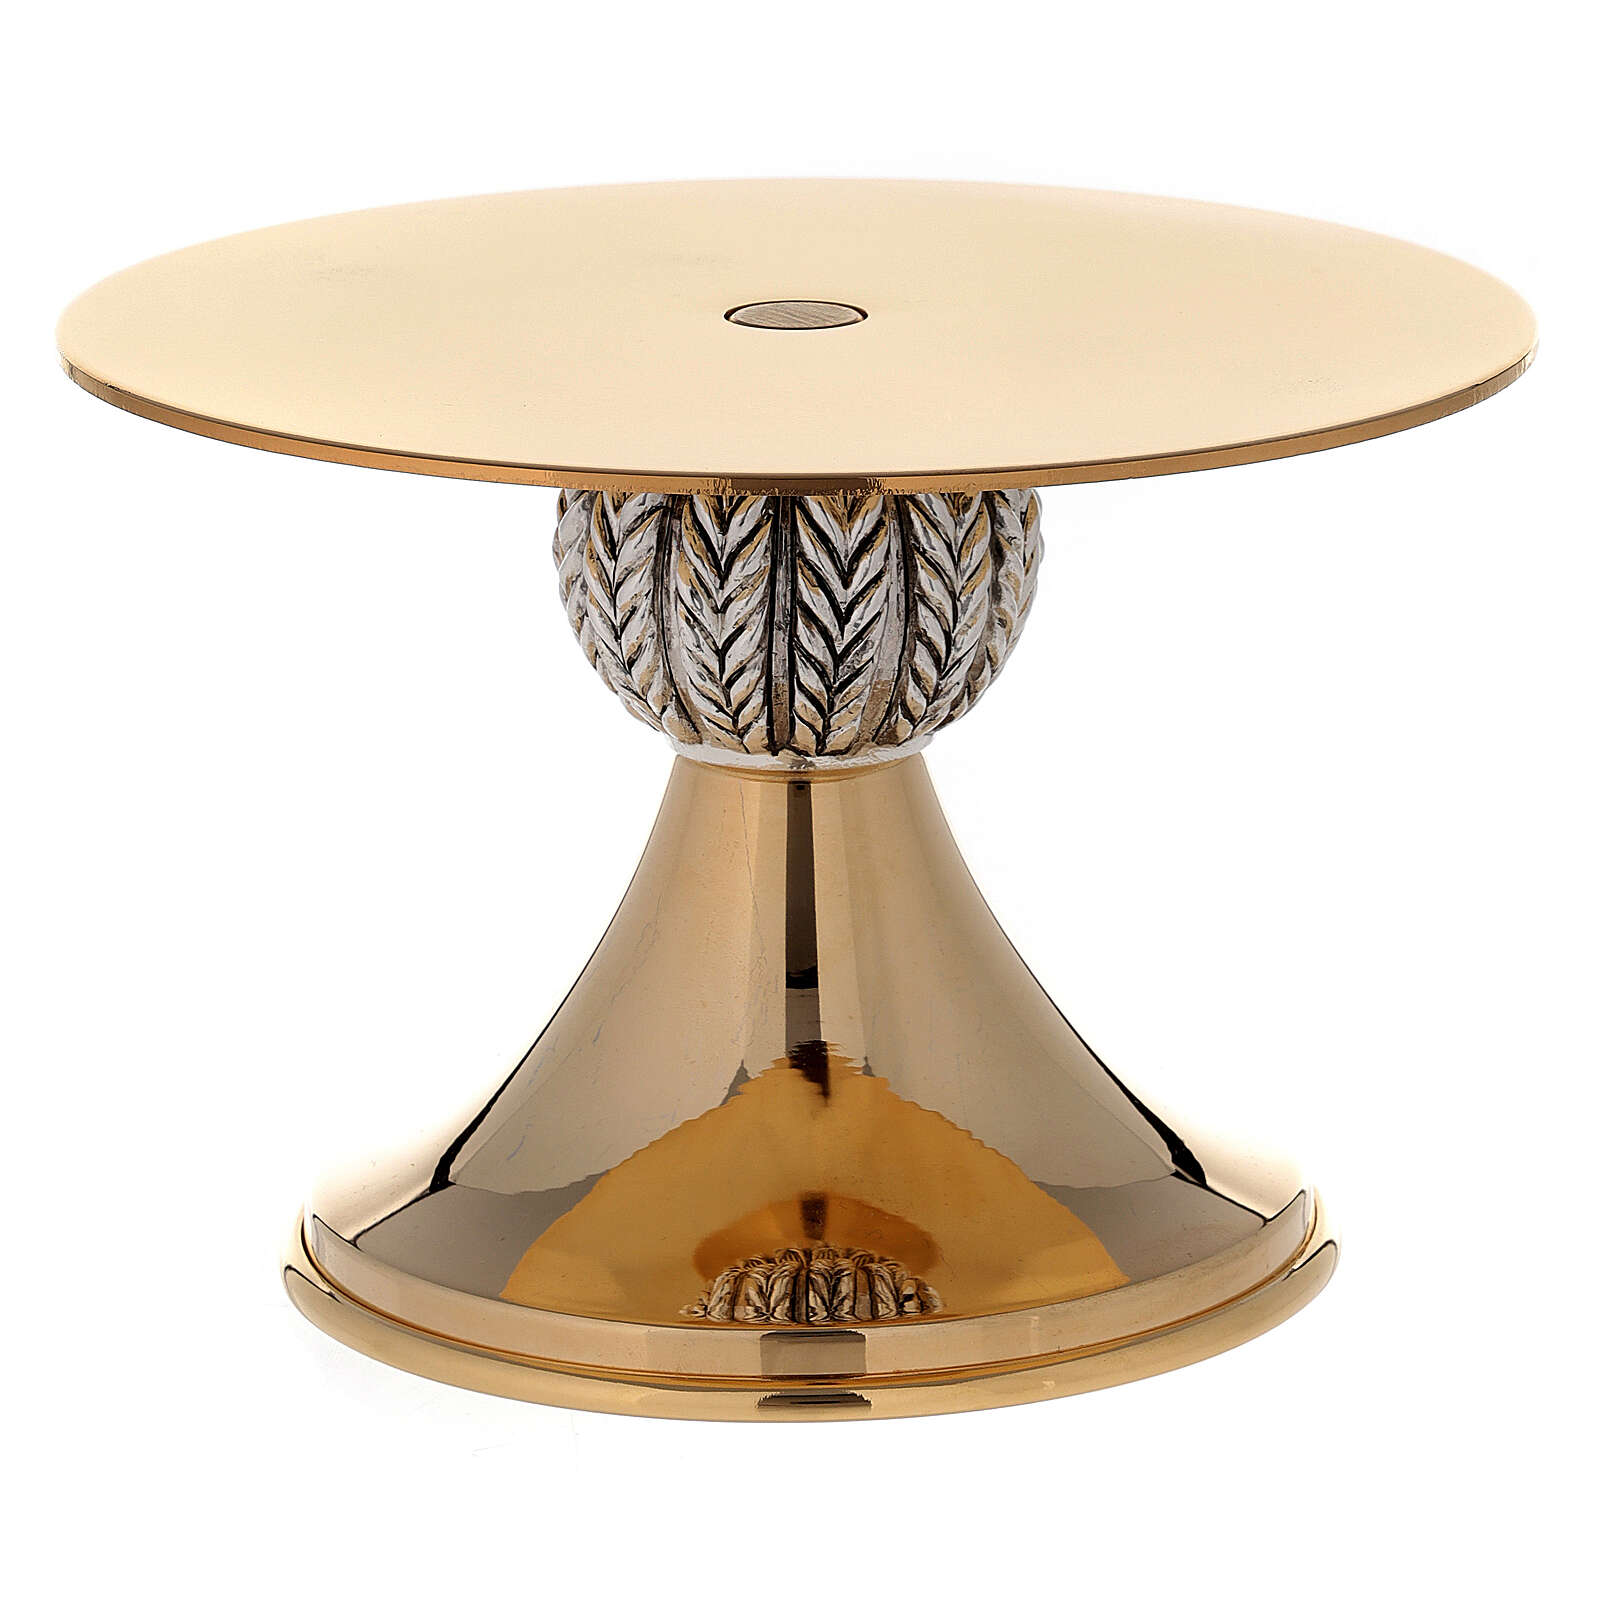 Thabor table 24-karat gold plated brass with spikes pattern on node 4